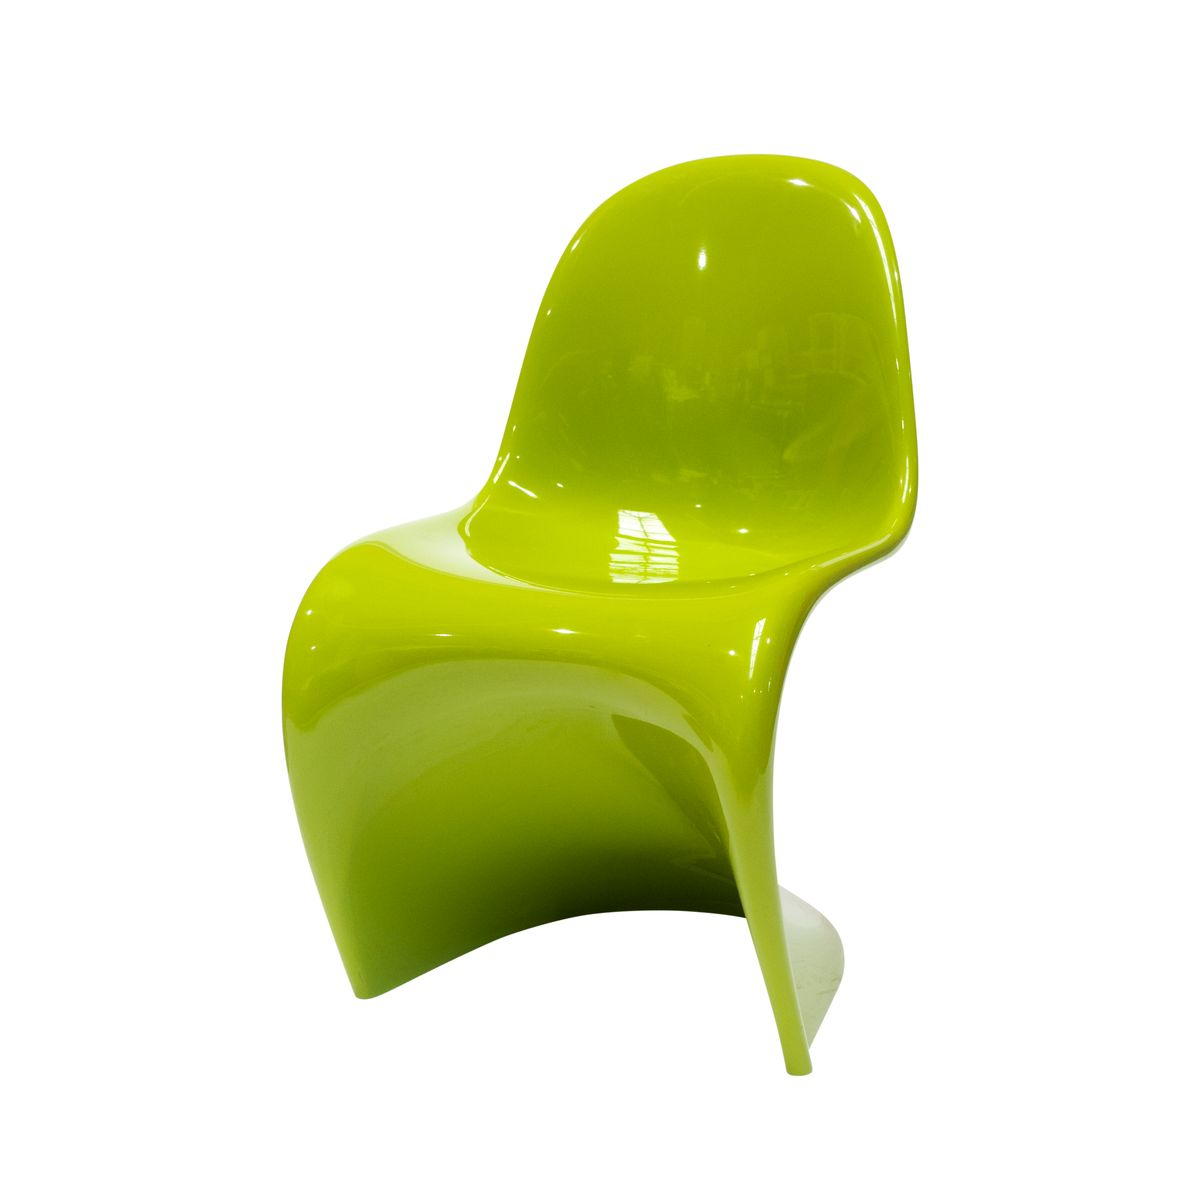 The Panton Chair in Chartreuse by Verner Panton for Vitra, 2006 ...